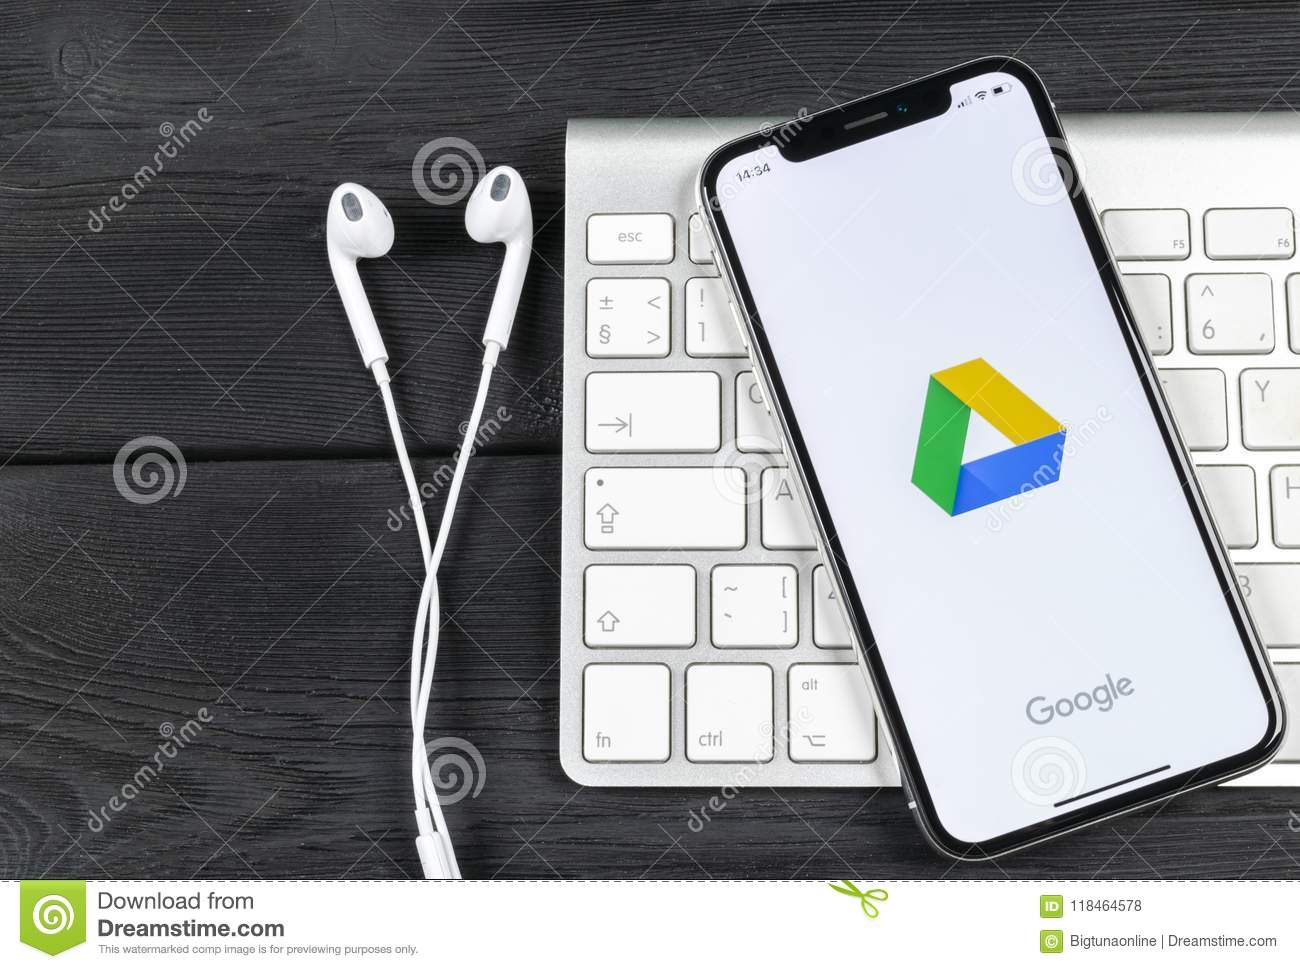 google drive download images iphone